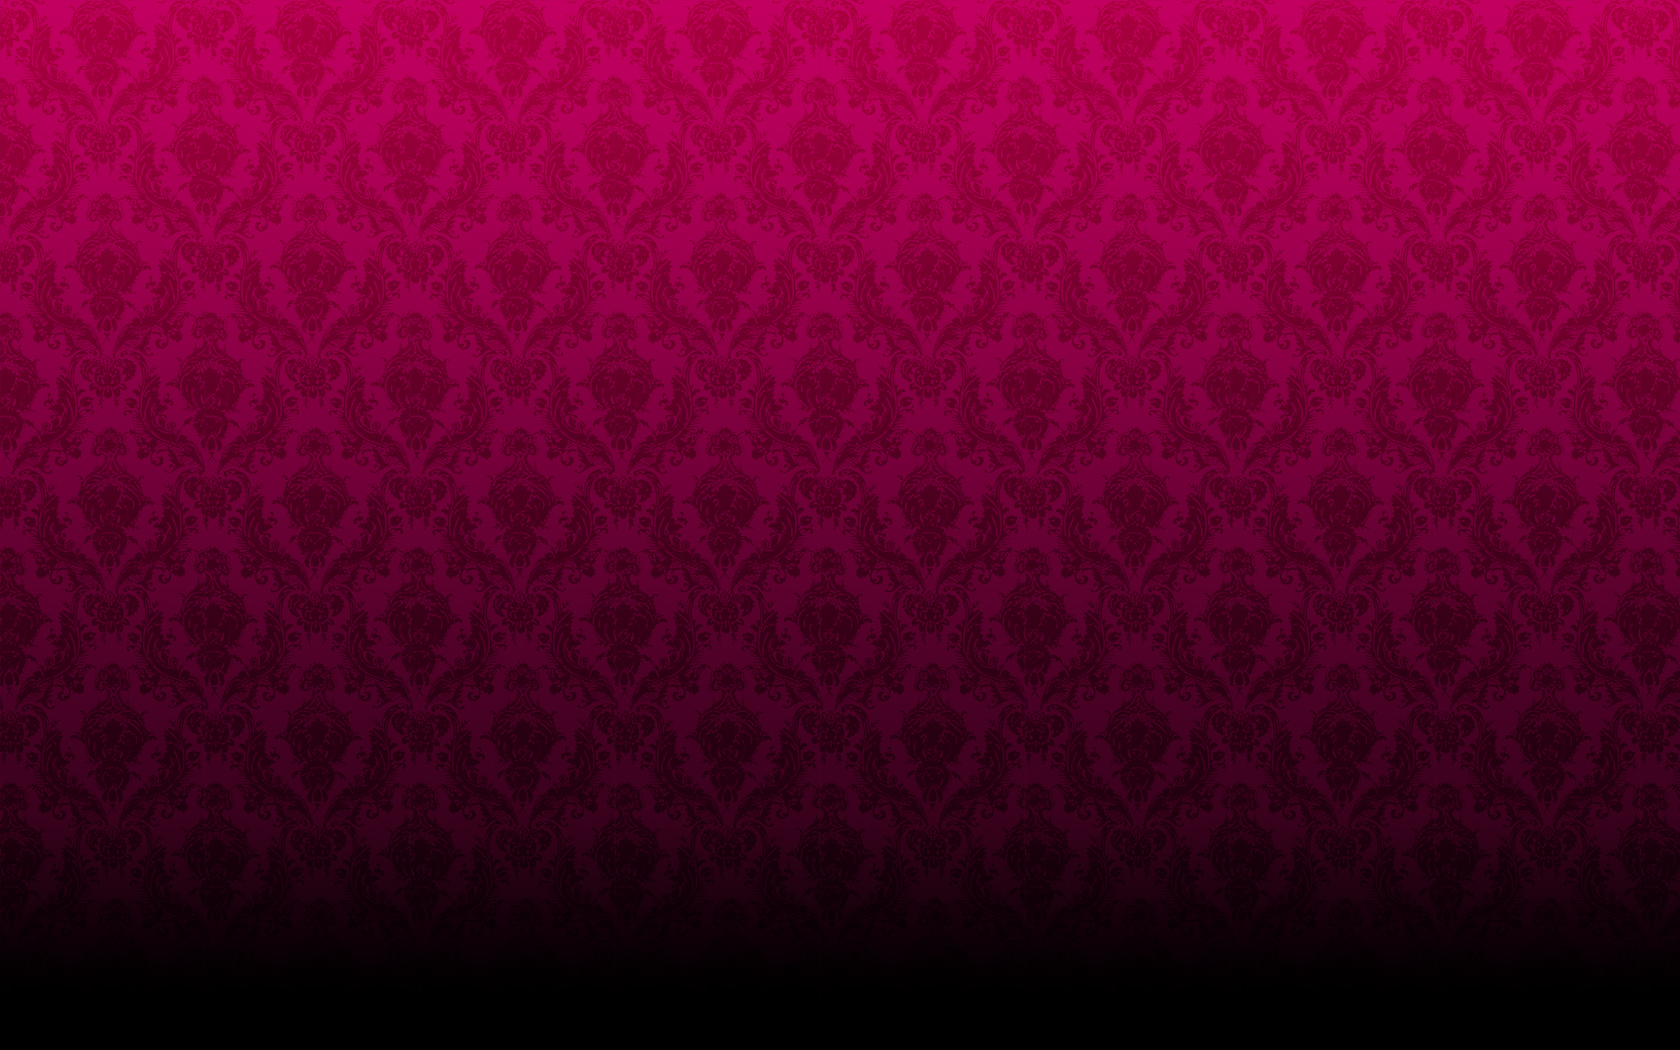 Magenta 39093840 Wallpaper for Free | Top High Quality Pics